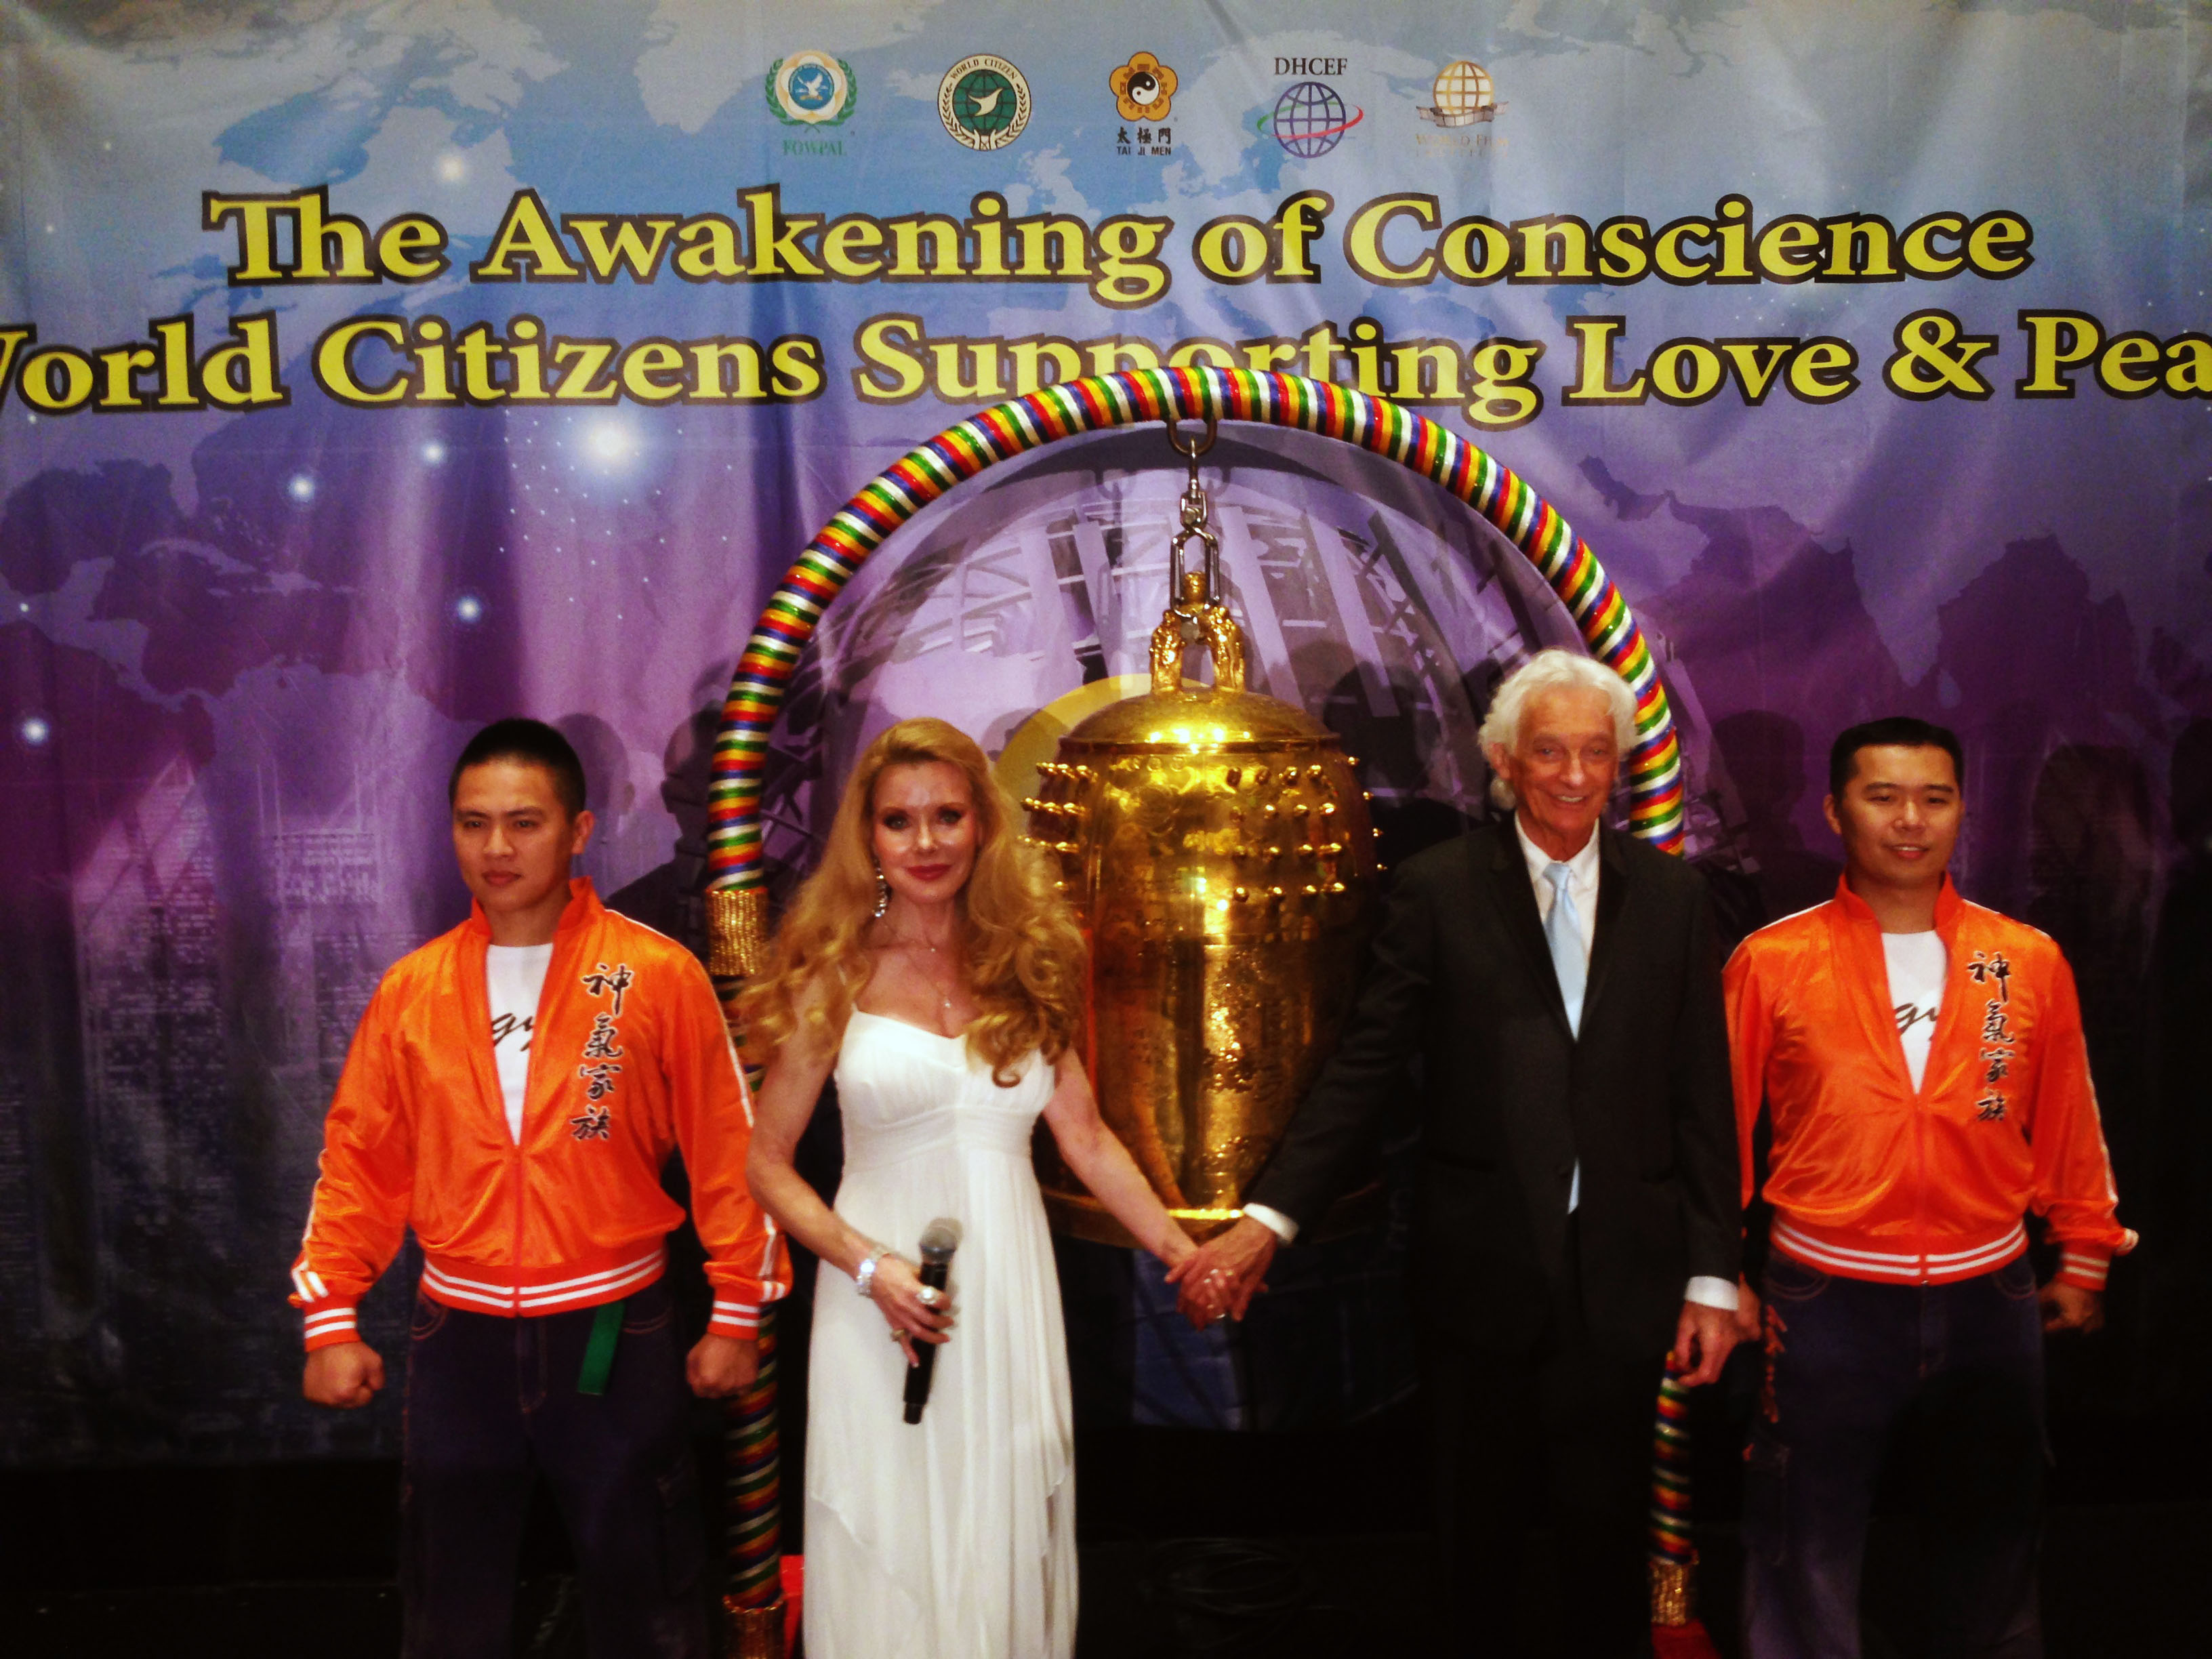 Awakening of World Conscience Conference